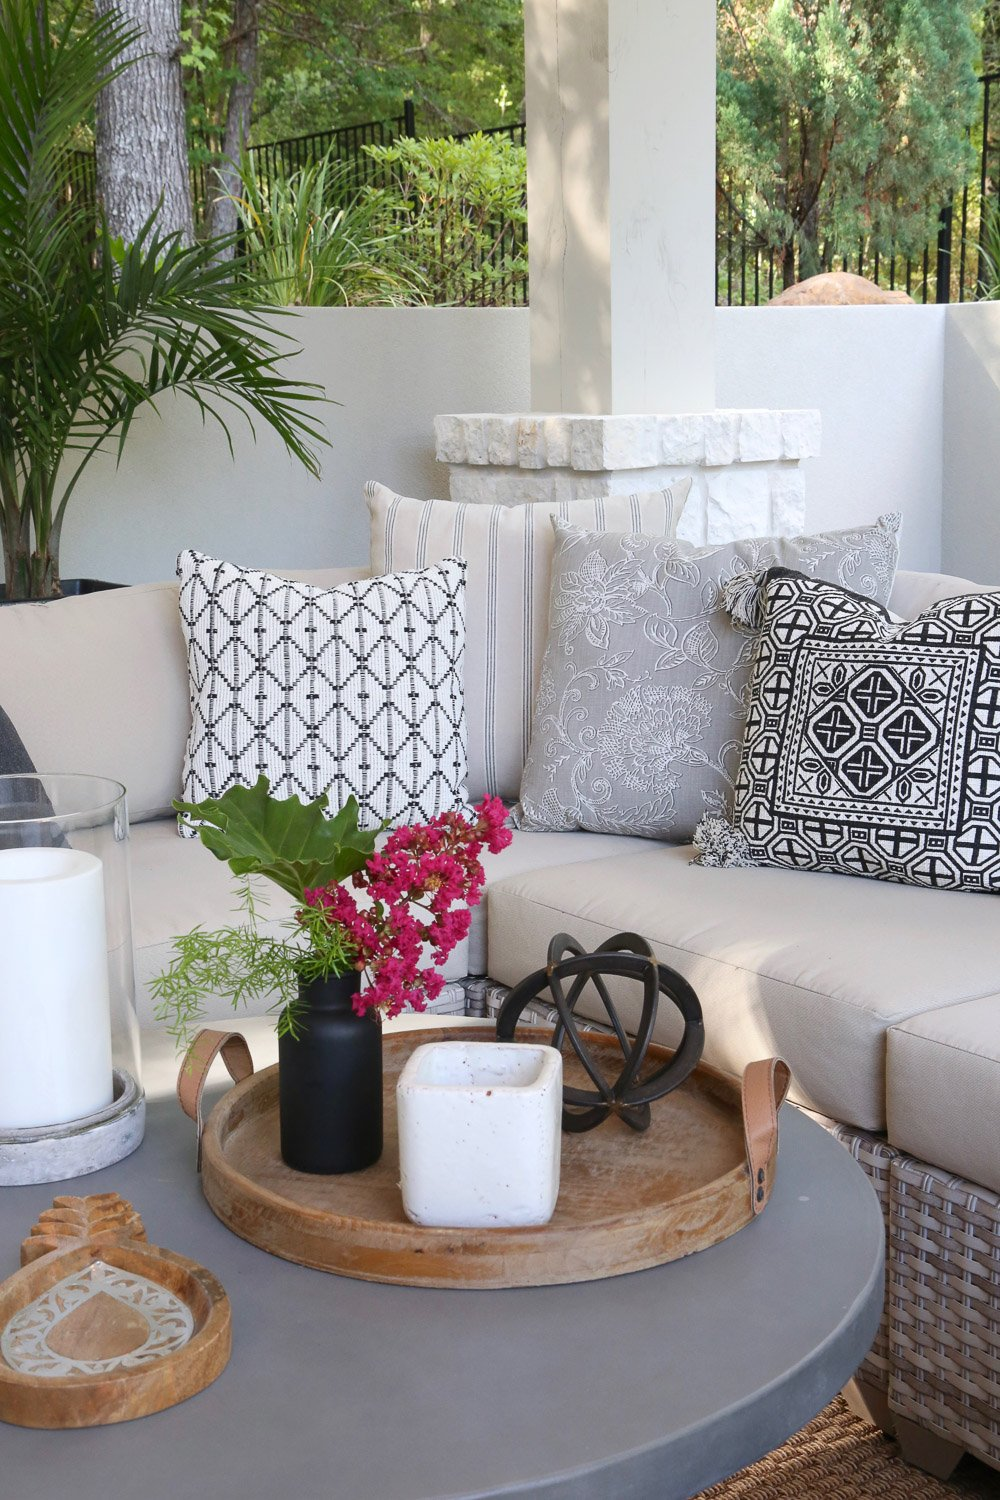 5 Minute Outdoor Decorating and Styling Tips and Tricks